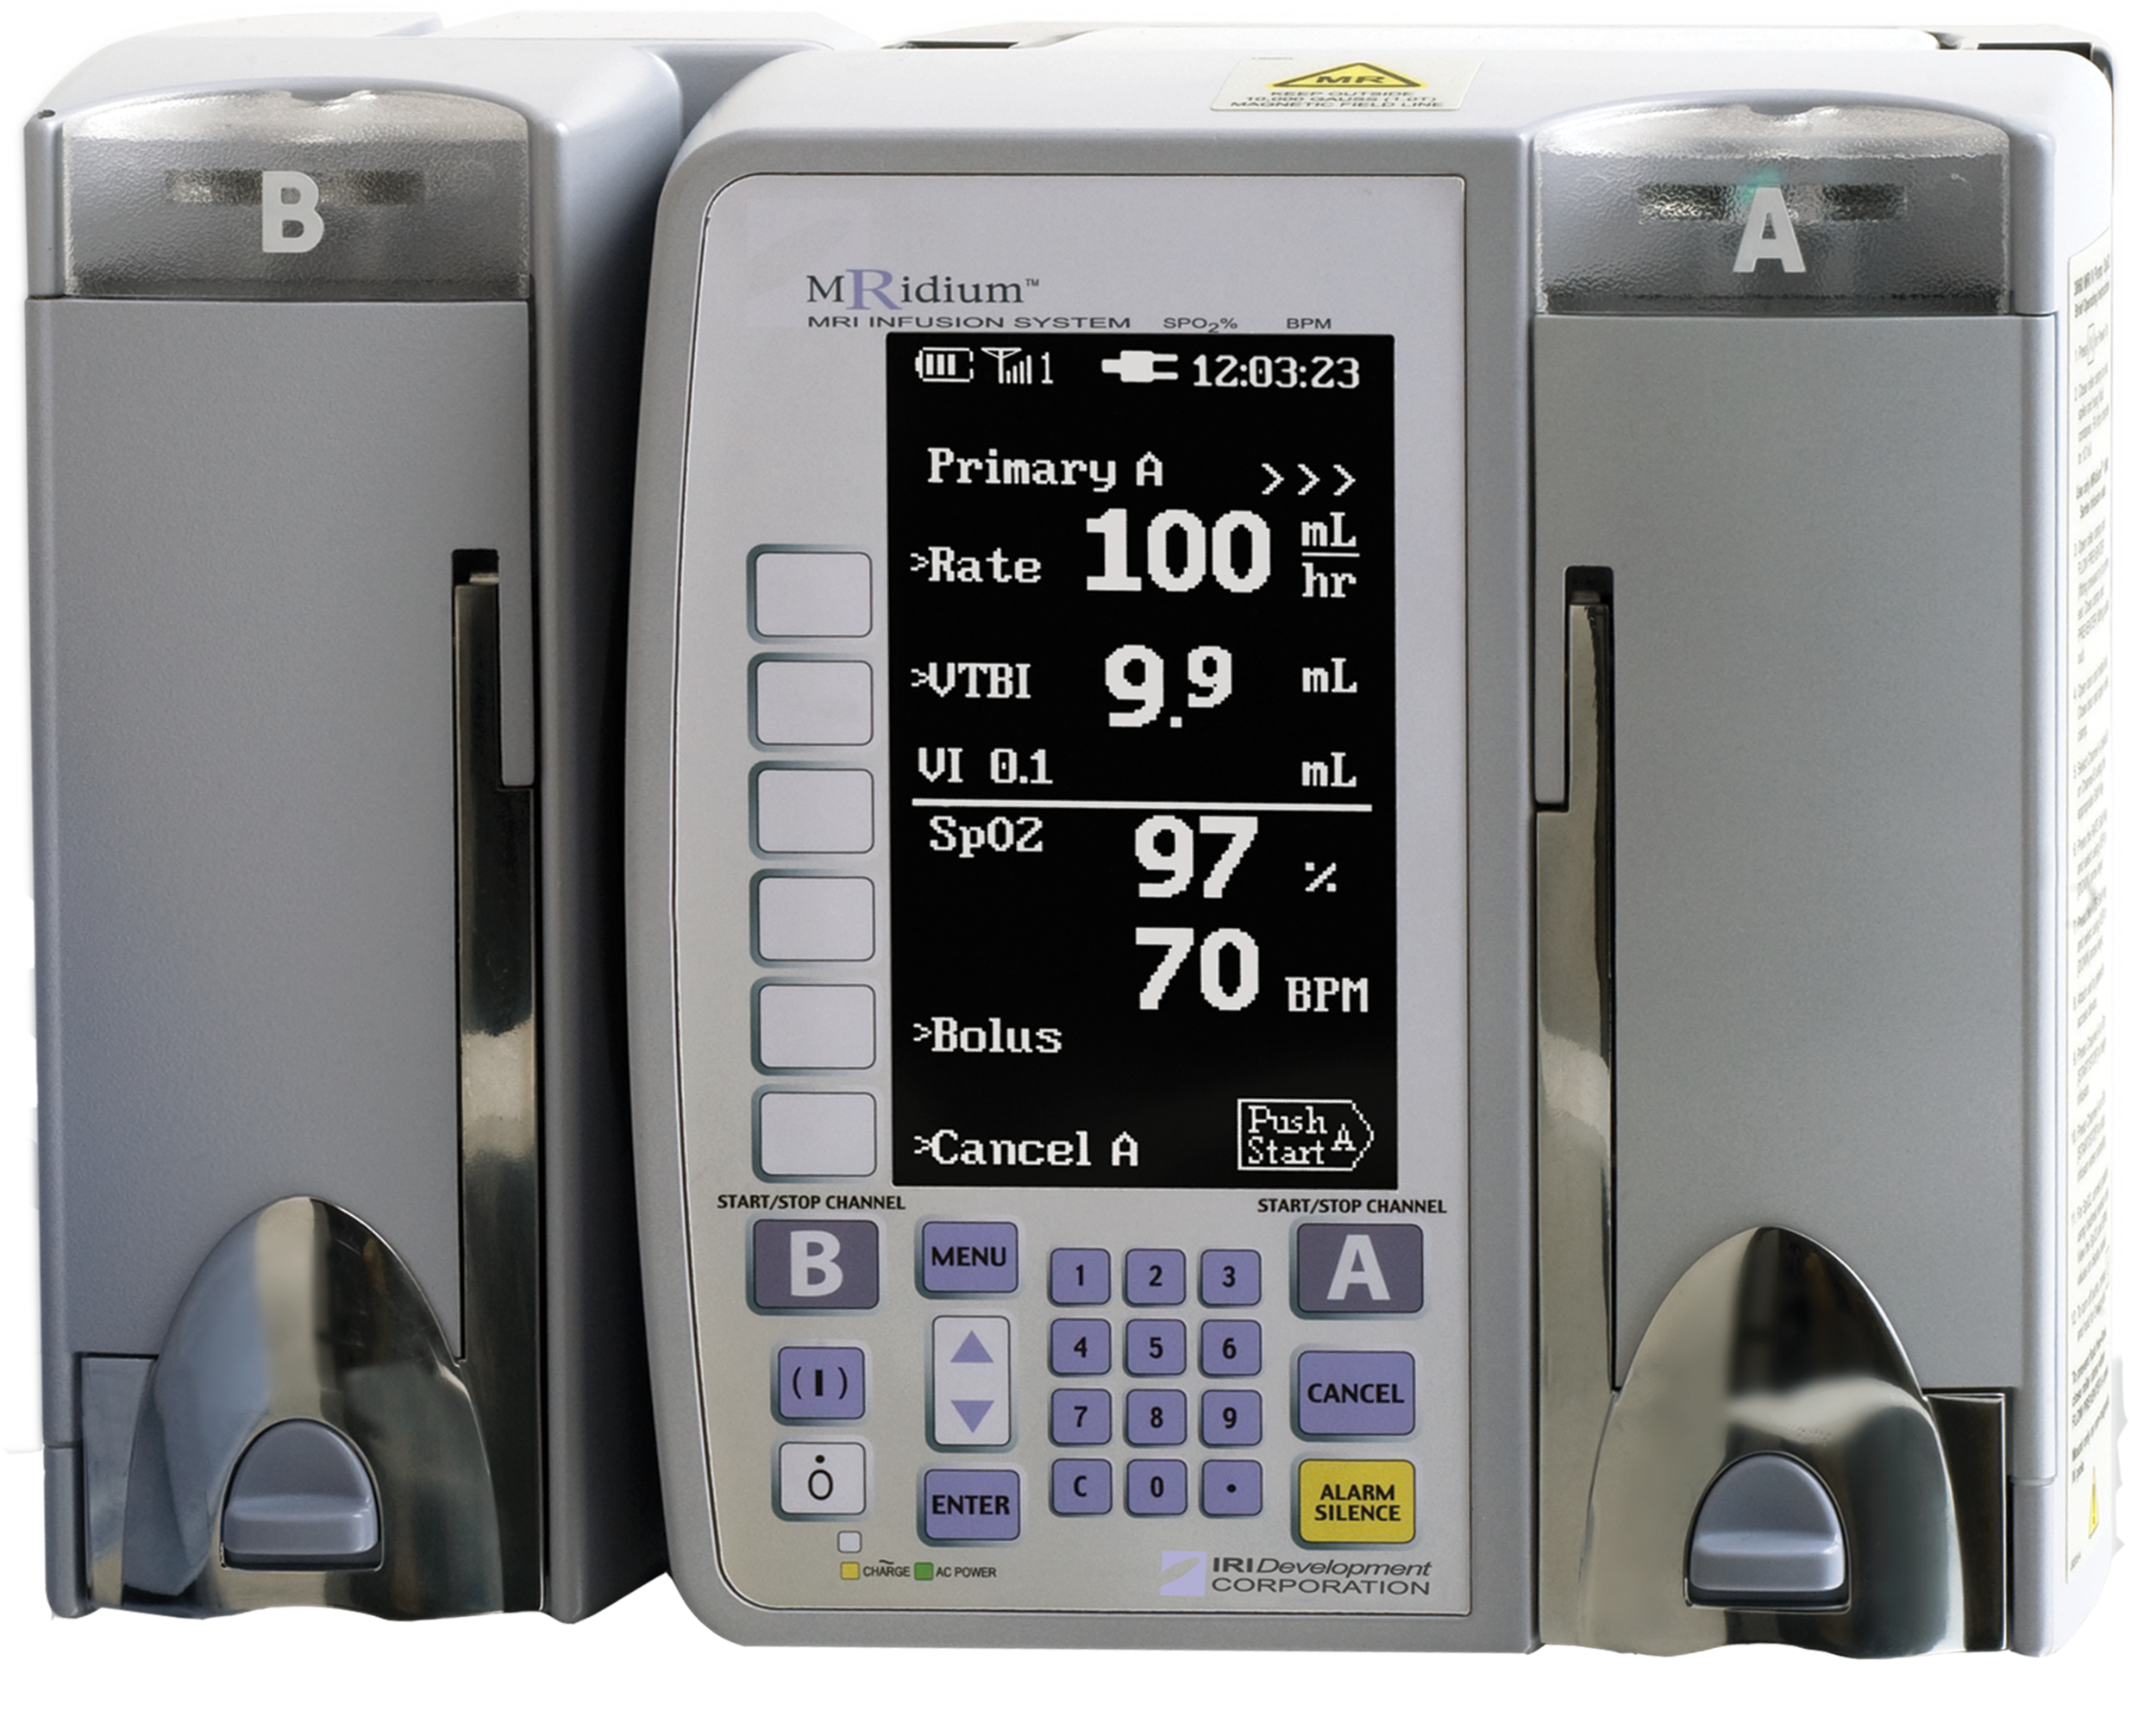 3860+ MRI IV Infusion Pump System